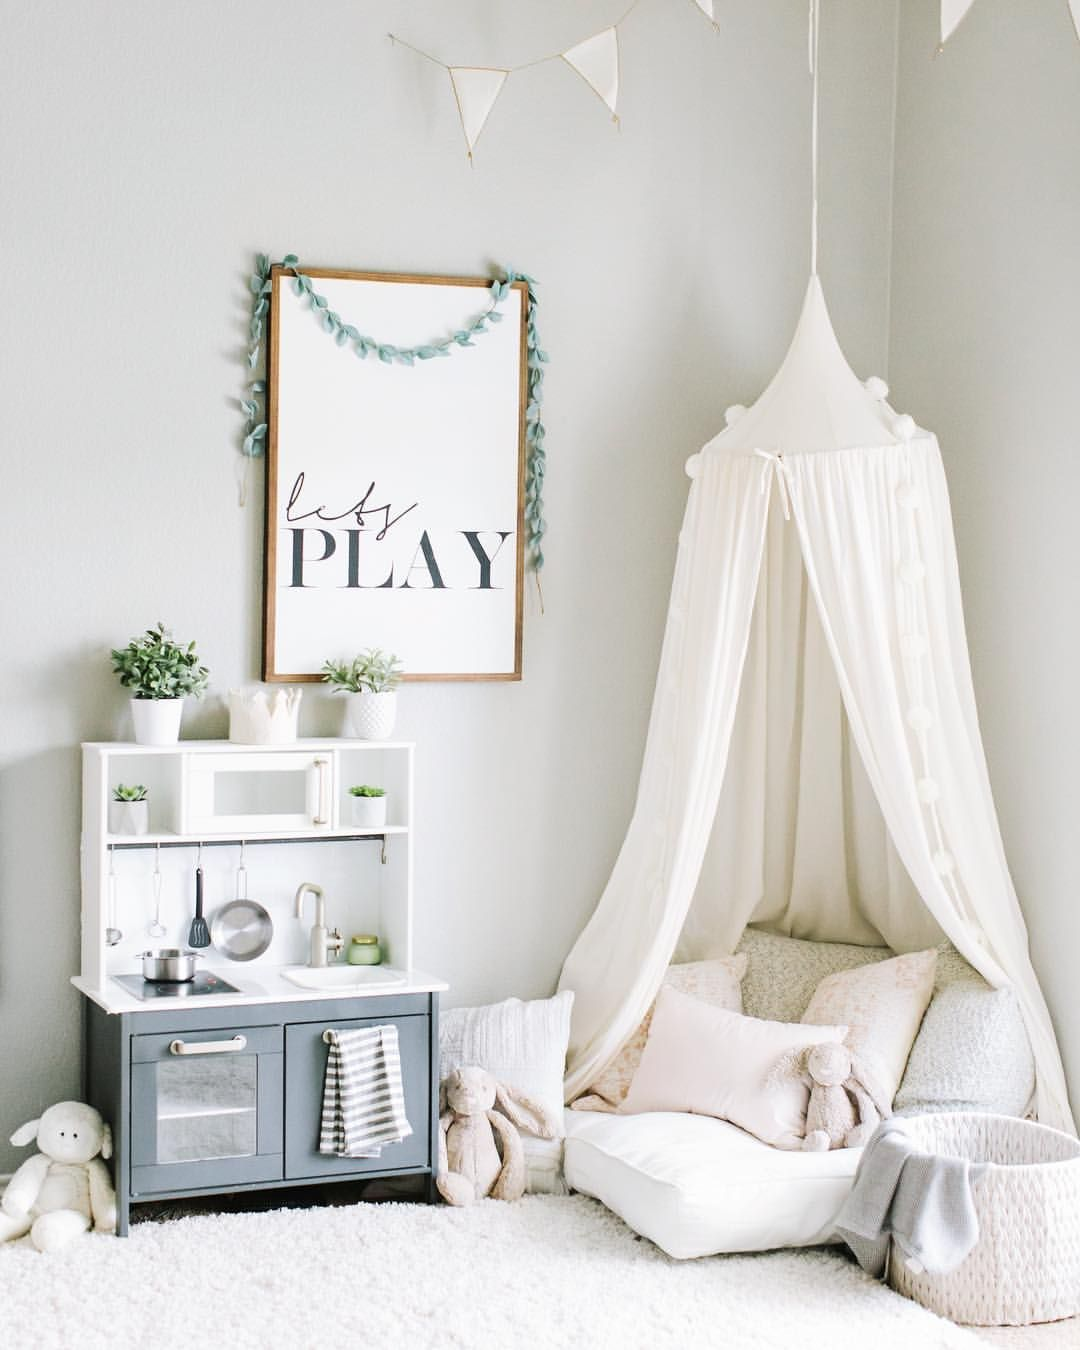 25 Cute And Comfy Scandinavian Nursery Ideas: Pin By Guji On Interior Design